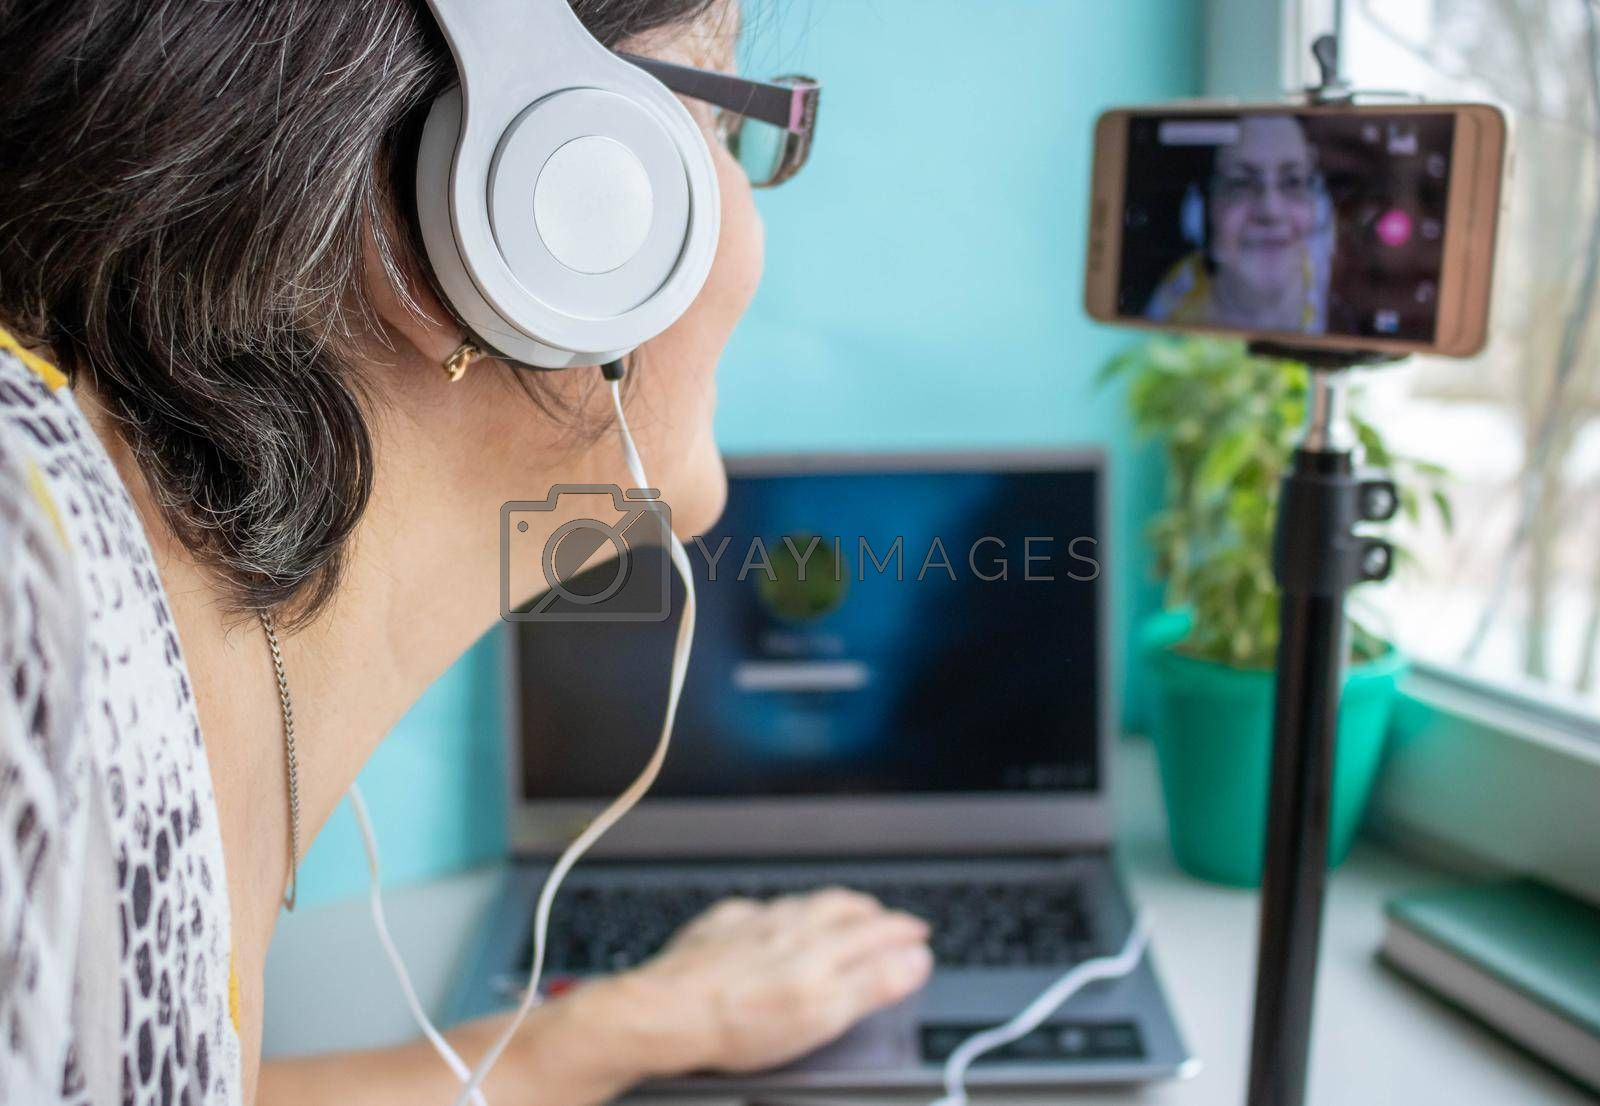 An elderly woman wearing headphones .Work from home online for the elderly.Communication over the Internet.